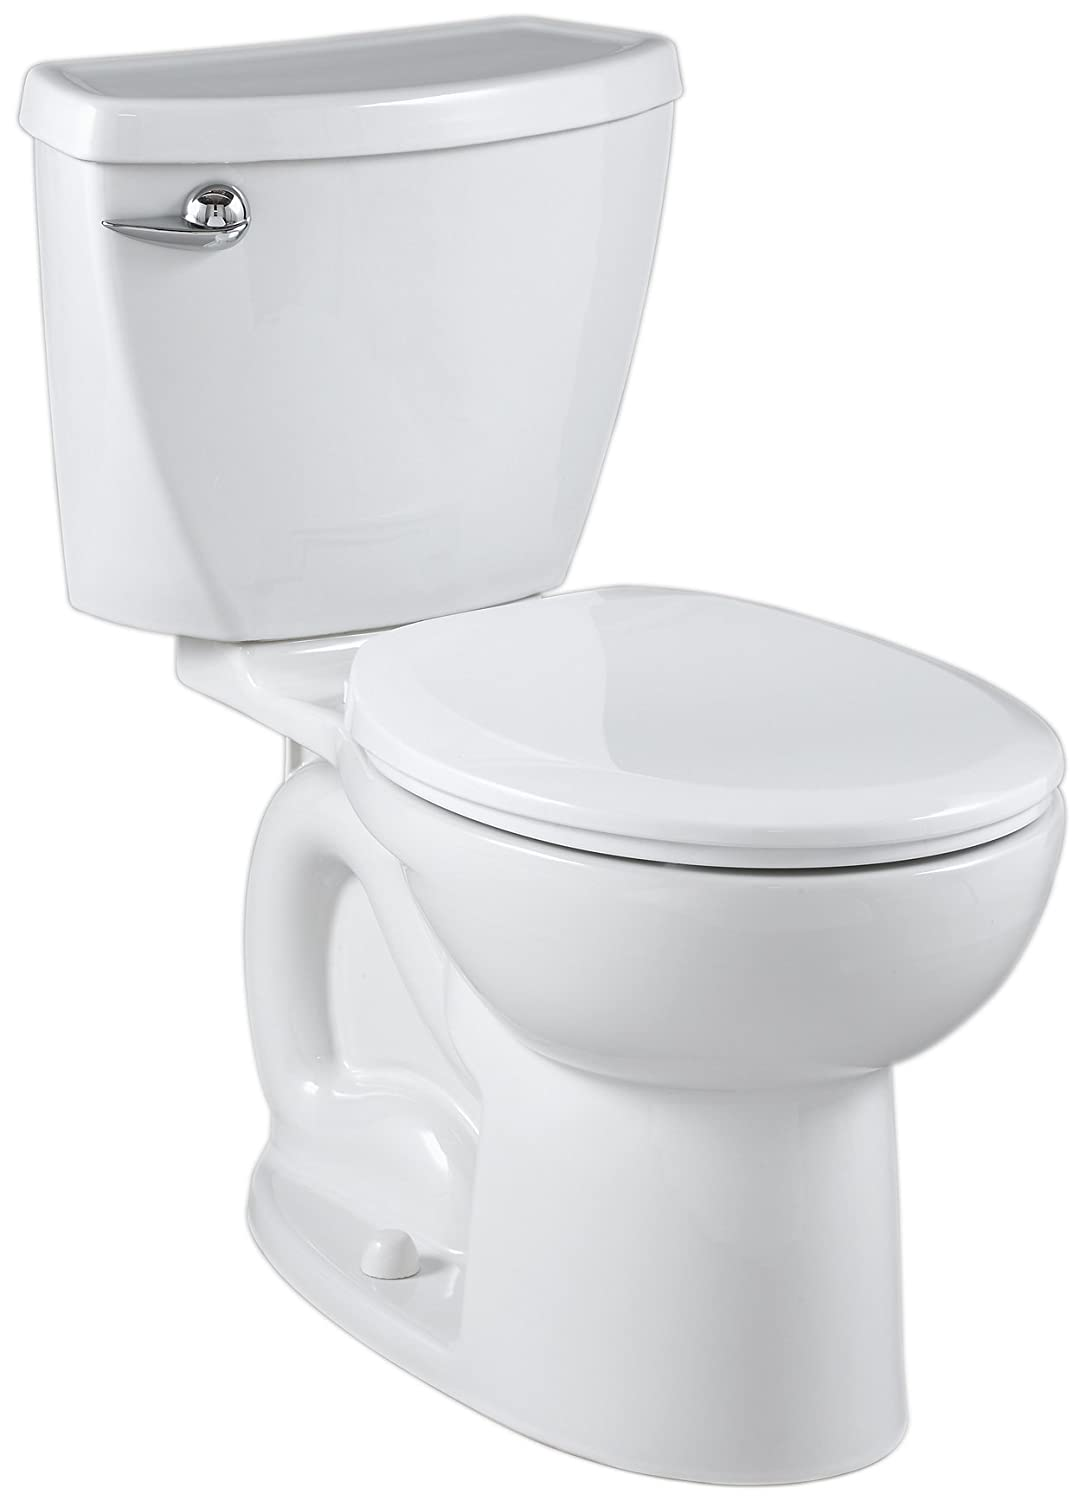 crane plumbing toilet flapper. Crane Plumbing 3016001 02 SureFlush 1 6 GPF  0 LPF Vitreous China Elongated Toilet Bowl 31212 Two Piece Toilets Amazon com